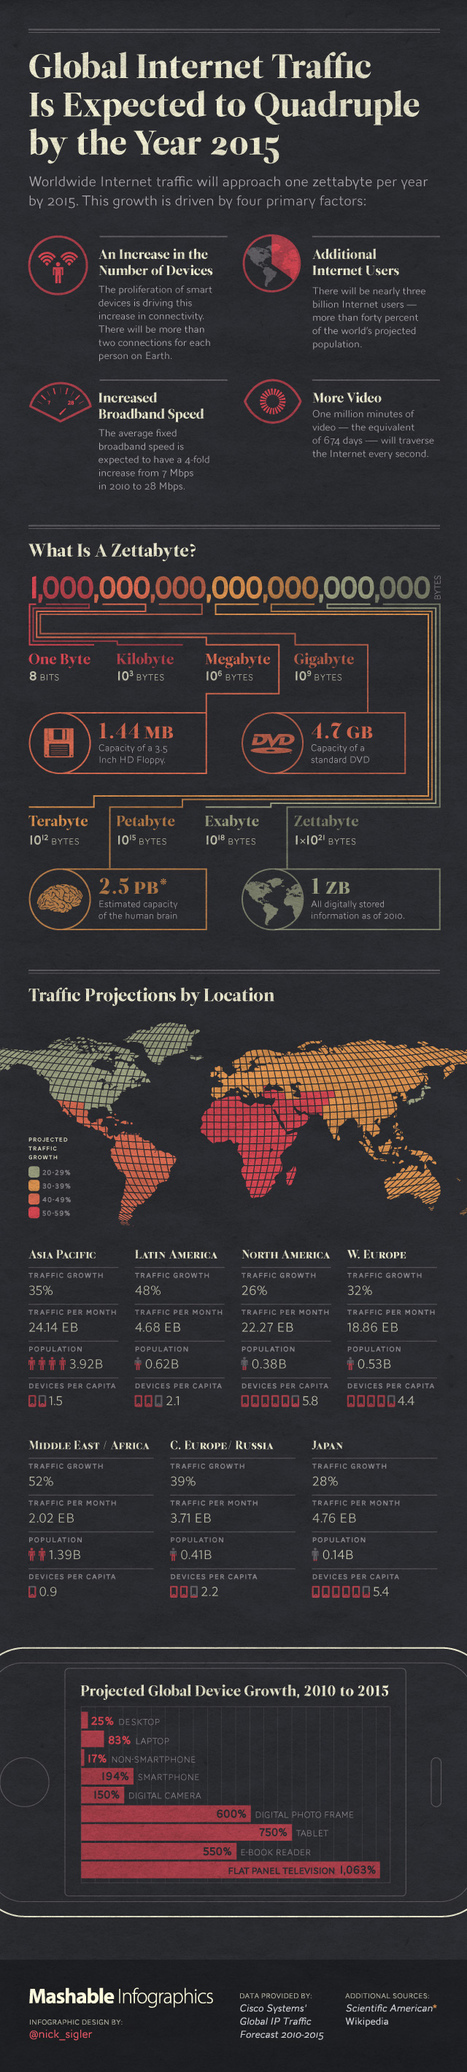 Global Internet Traffic Expected to Quadruple by 2015 | Infographics | Scoop.it